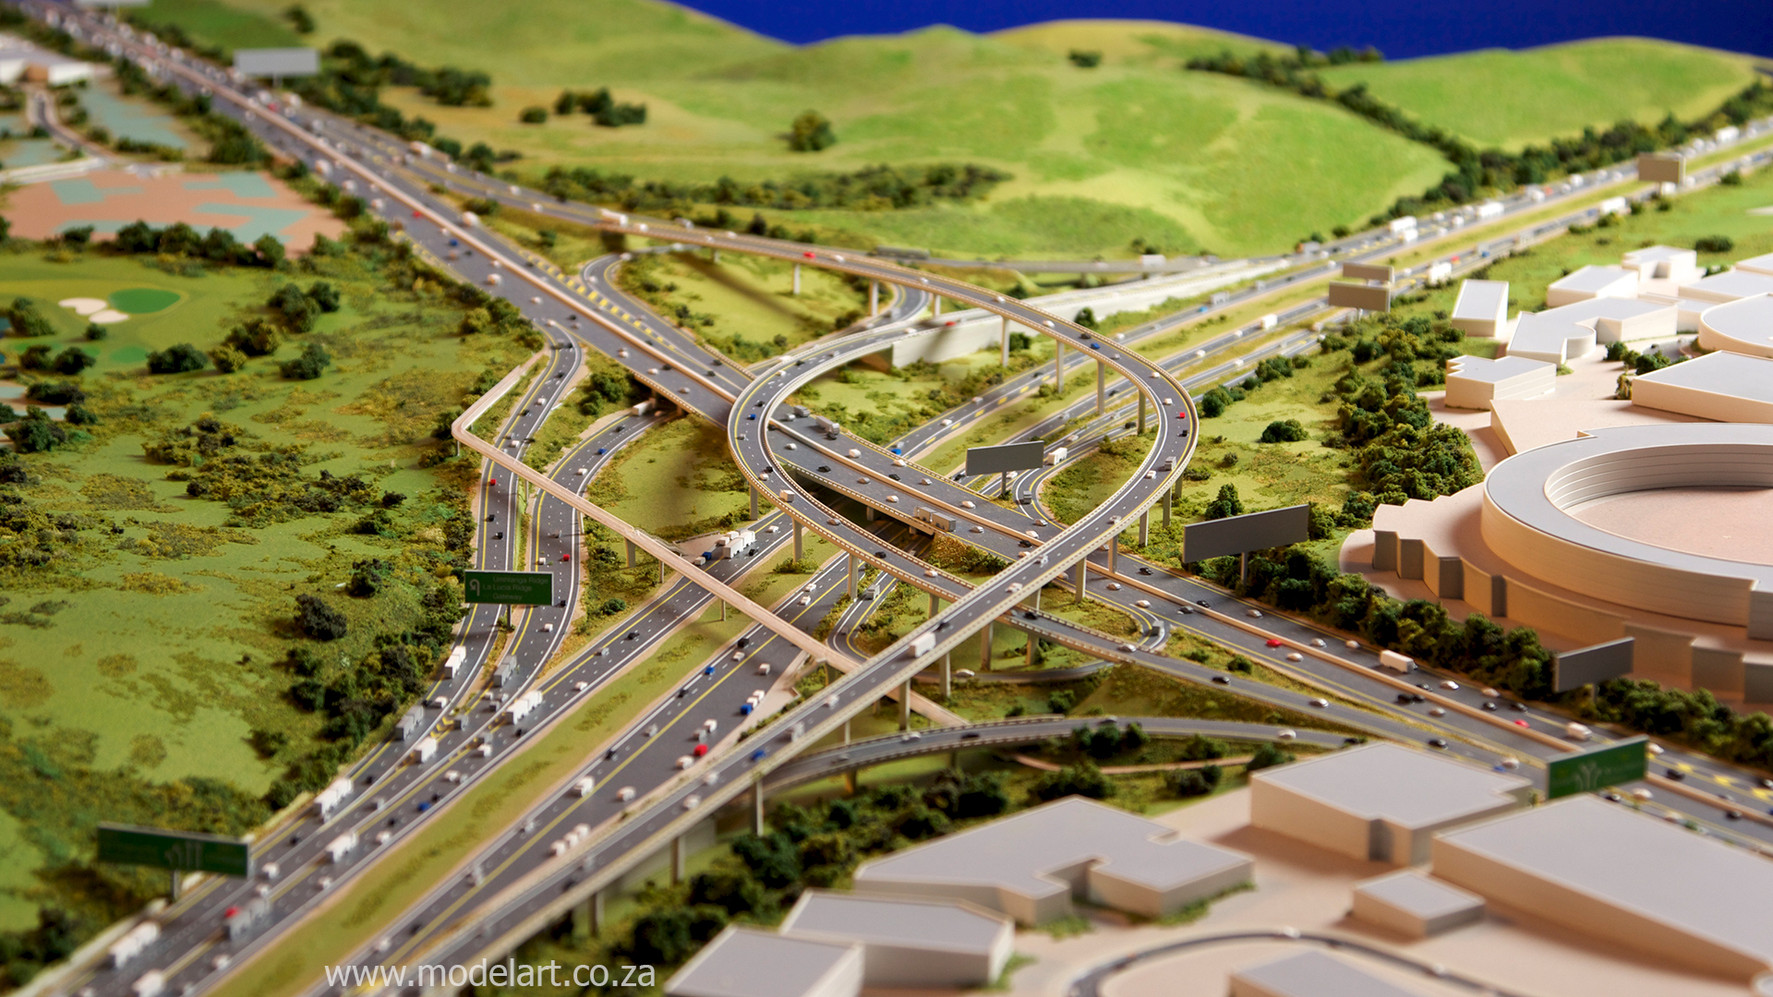 Architectural-Scale-Model-Engineering-Mt Edgecomb Interchange-5